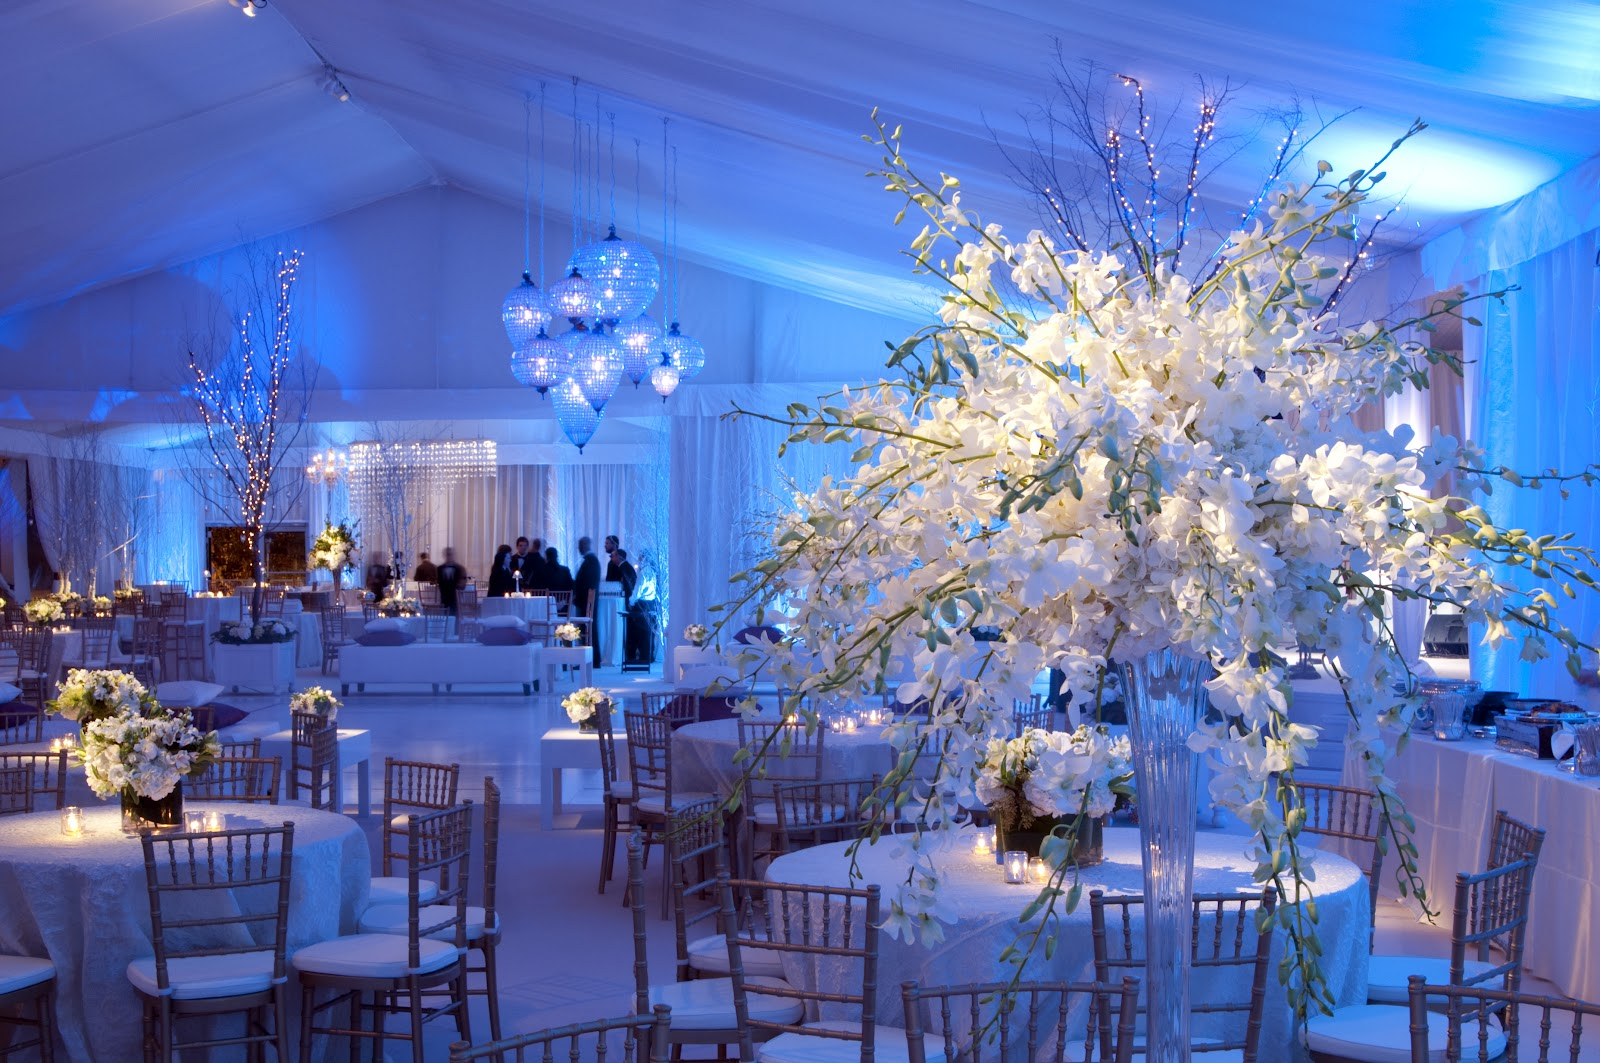 wedding decor tips9.jpg